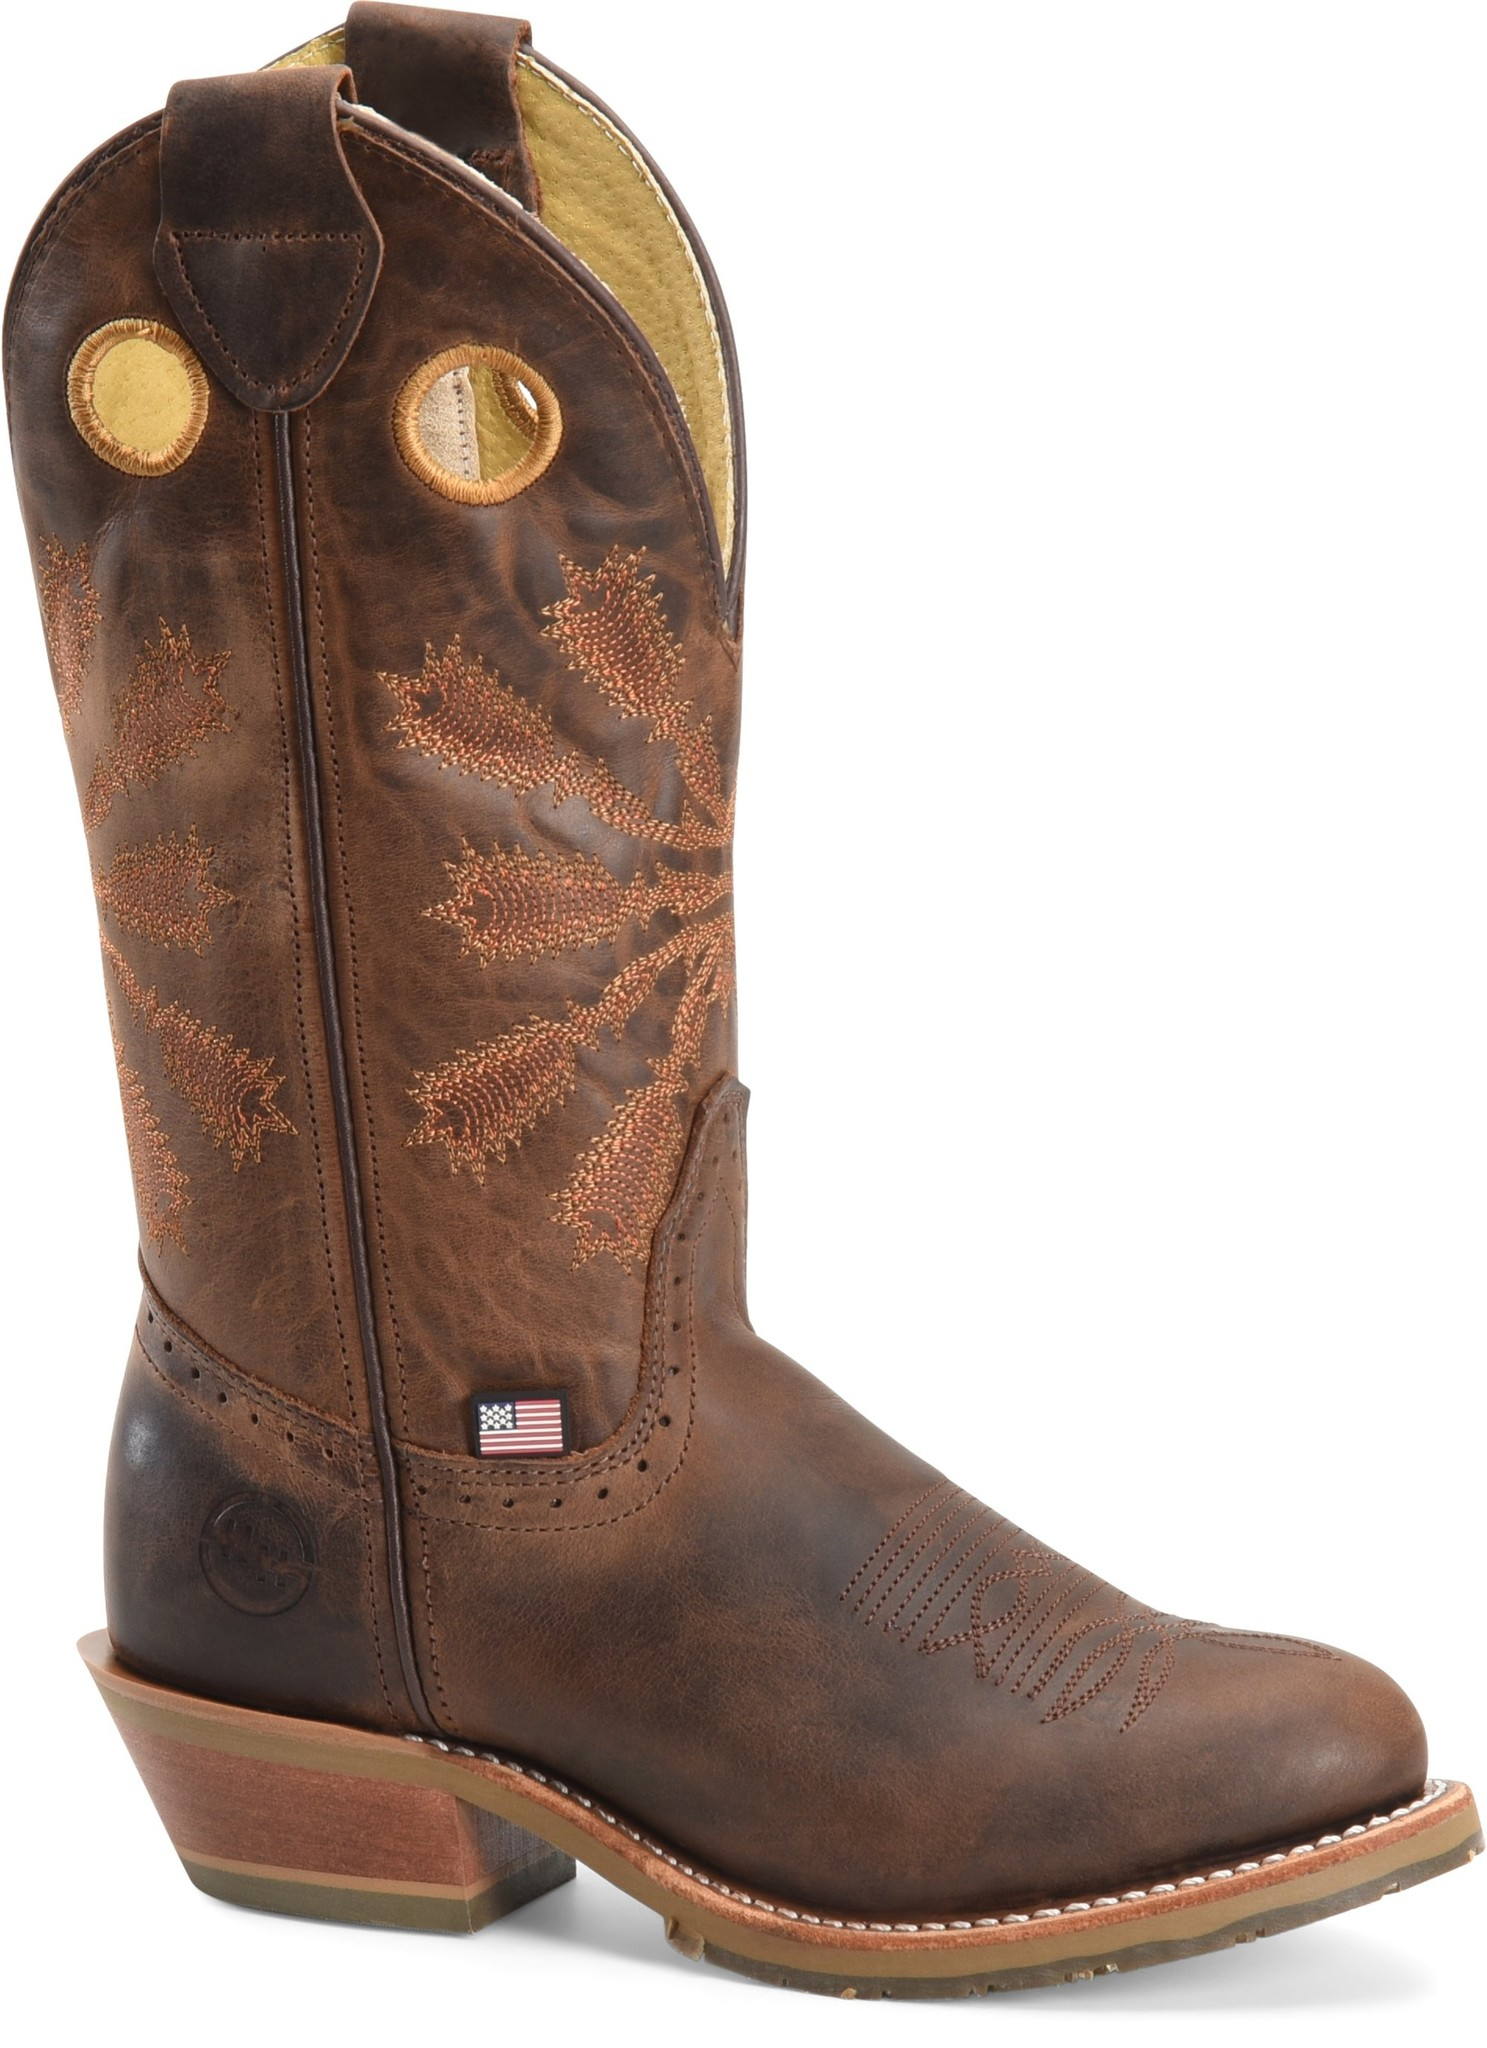 Women's Double H Arvada DH5316